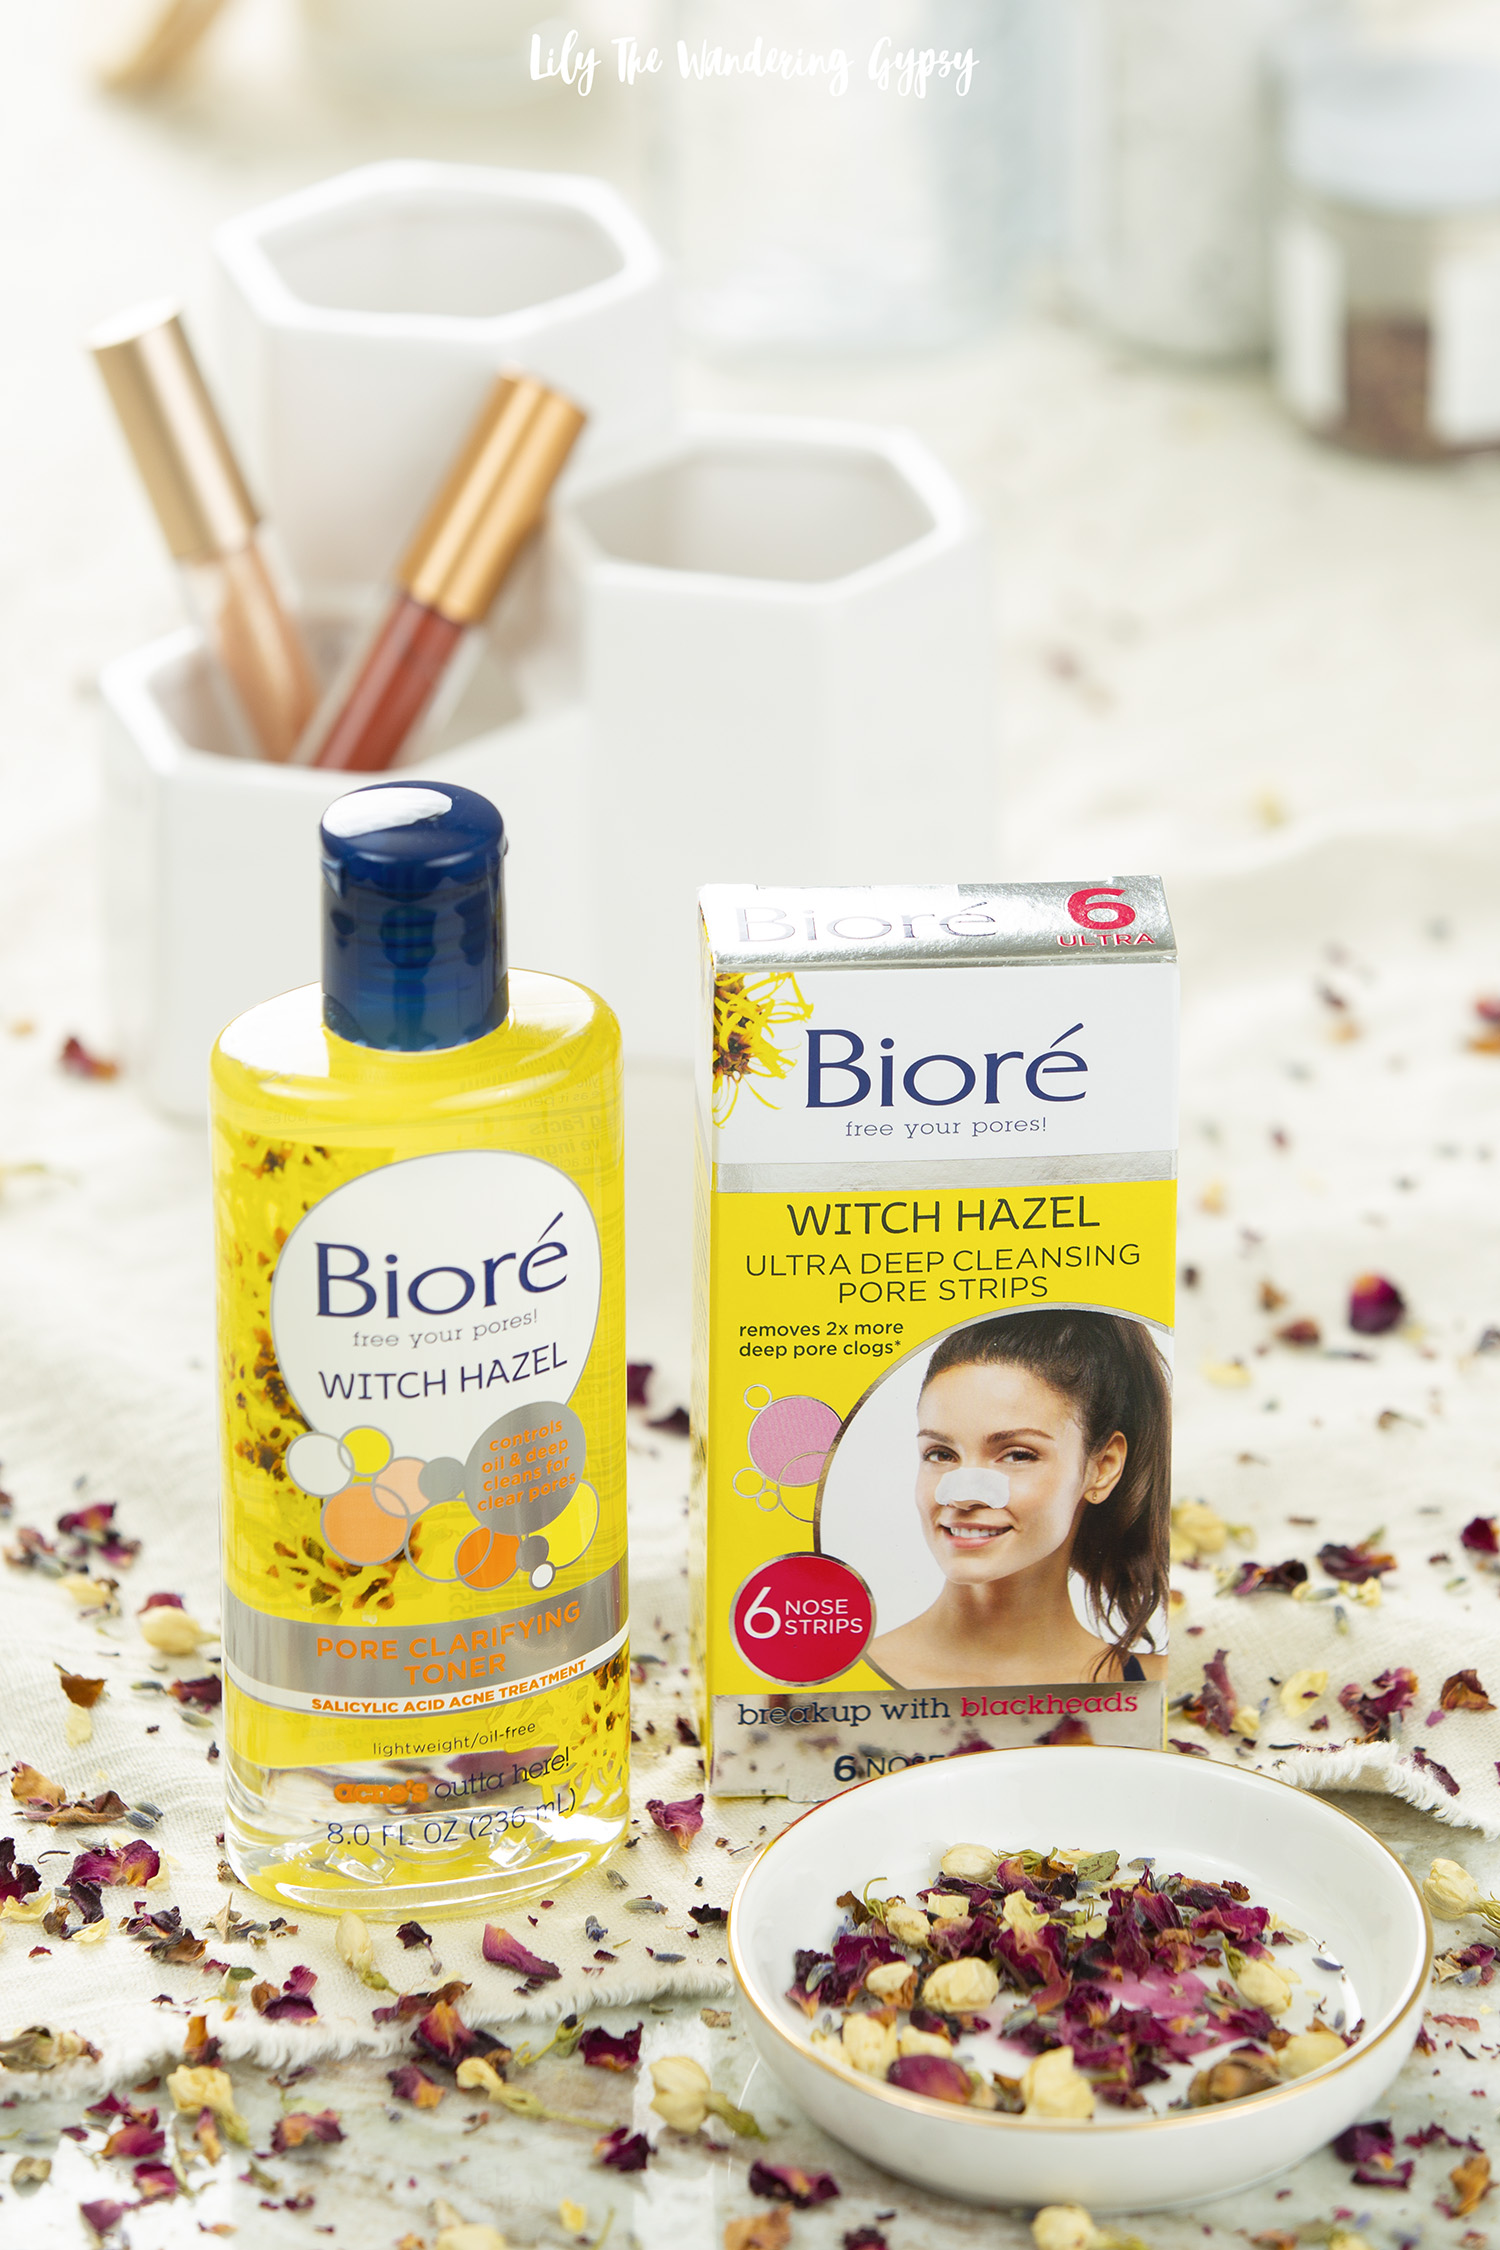 Get amazing skincare results with Bioré Witch Hazel products #BioreWitchHazel #BioreAmbassador #BioreBabe